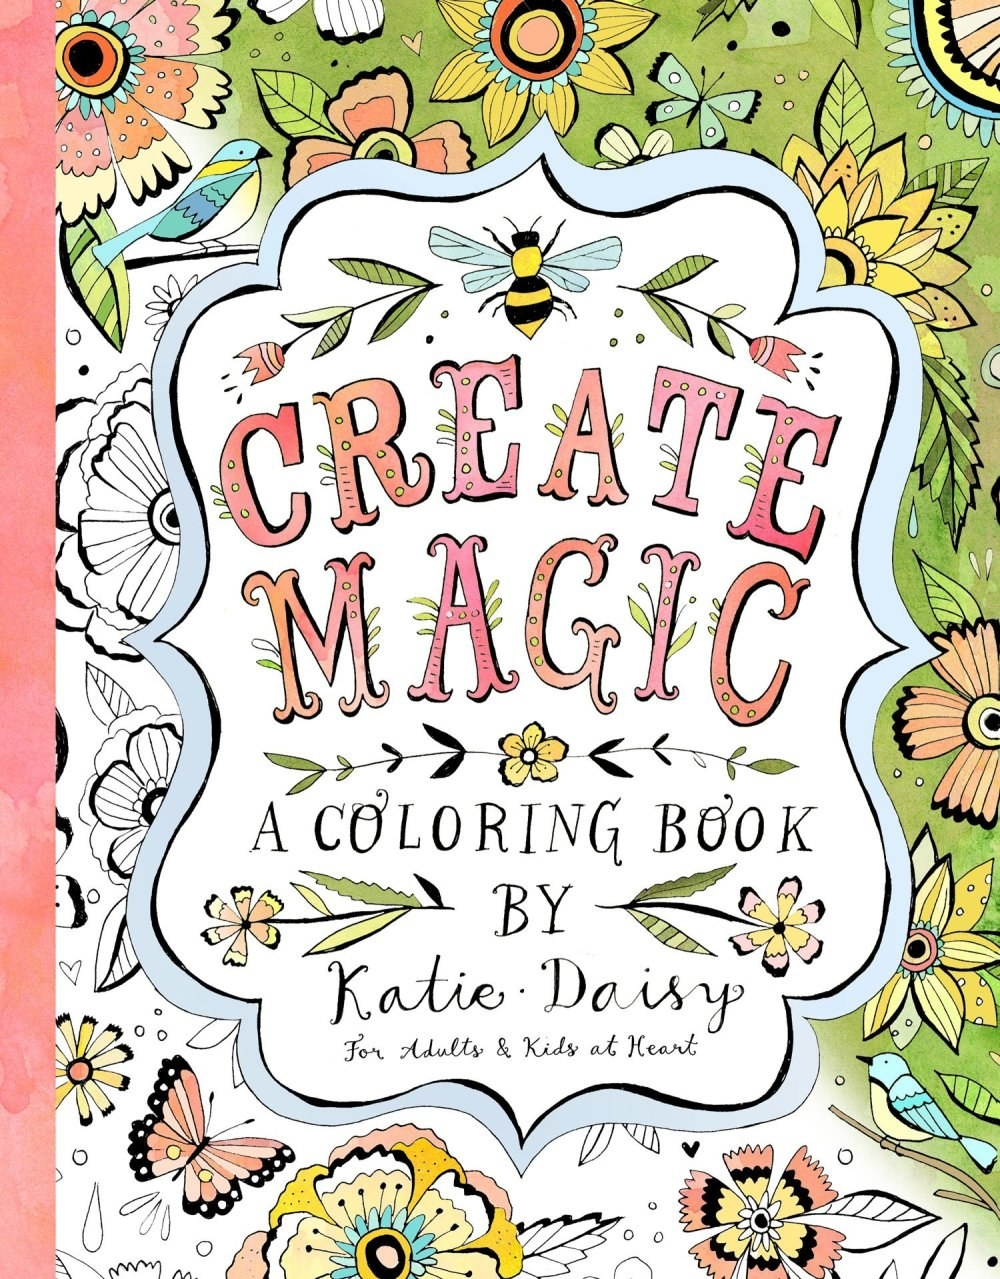 Pretty True Colors Book Small For Colored Girls Book Solid Color Me Coloring Book 3d Coloring Book Youthful Cheap Coloring Books ColouredSonic The Hedgehog Coloring Book 27 Awesome Coloring Books You\u0027ll Want To Start Using ASAP